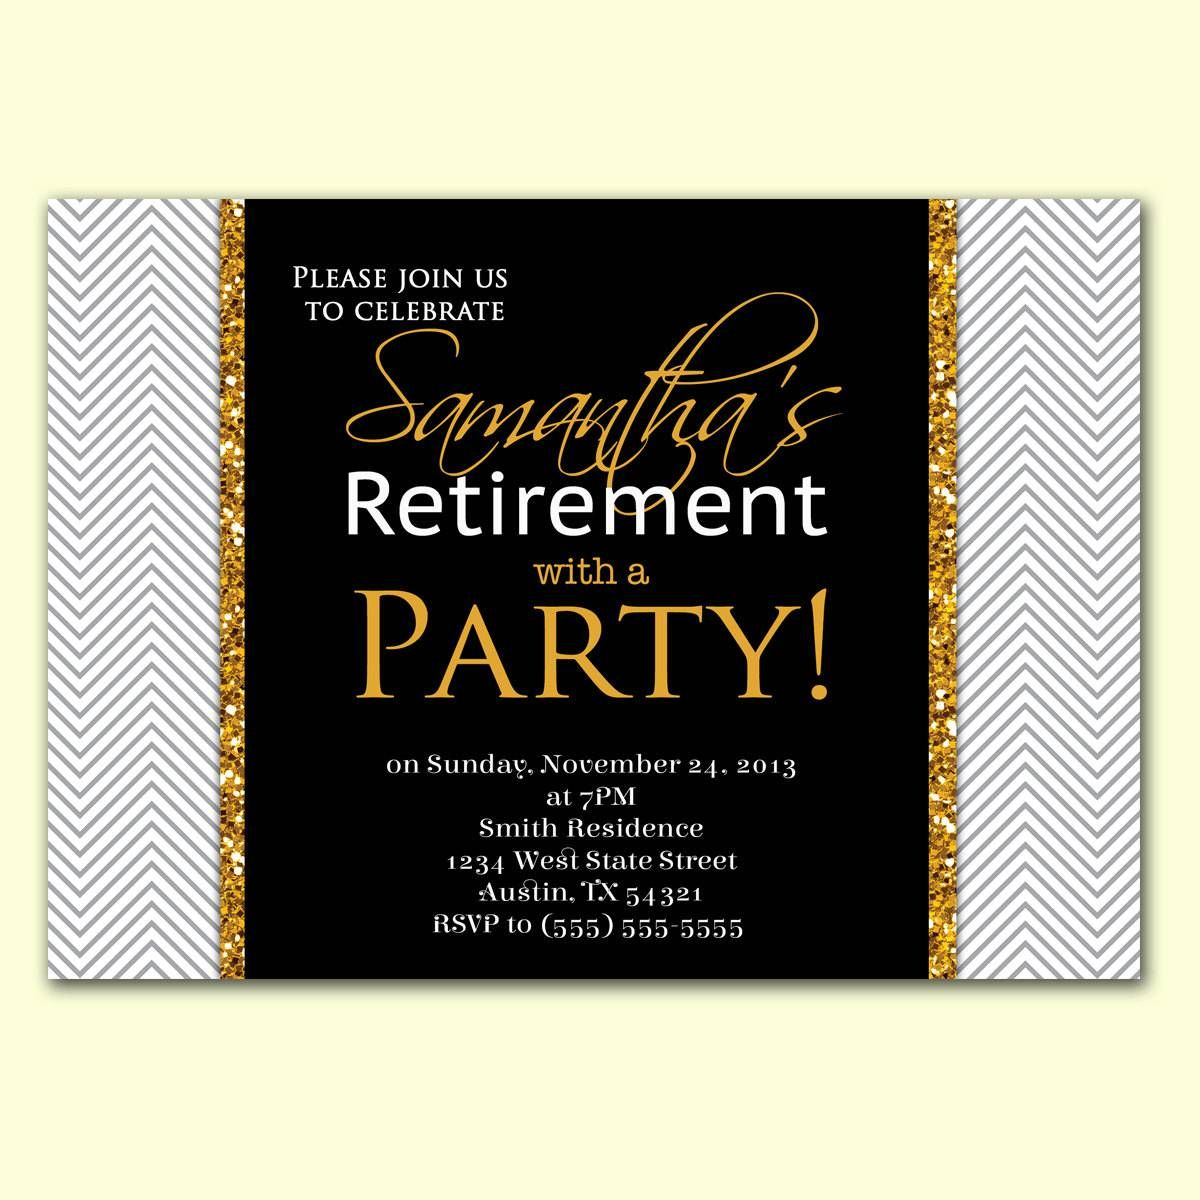 Retirement Party Invitation Wording In Hindi | invites | Pinterest ...